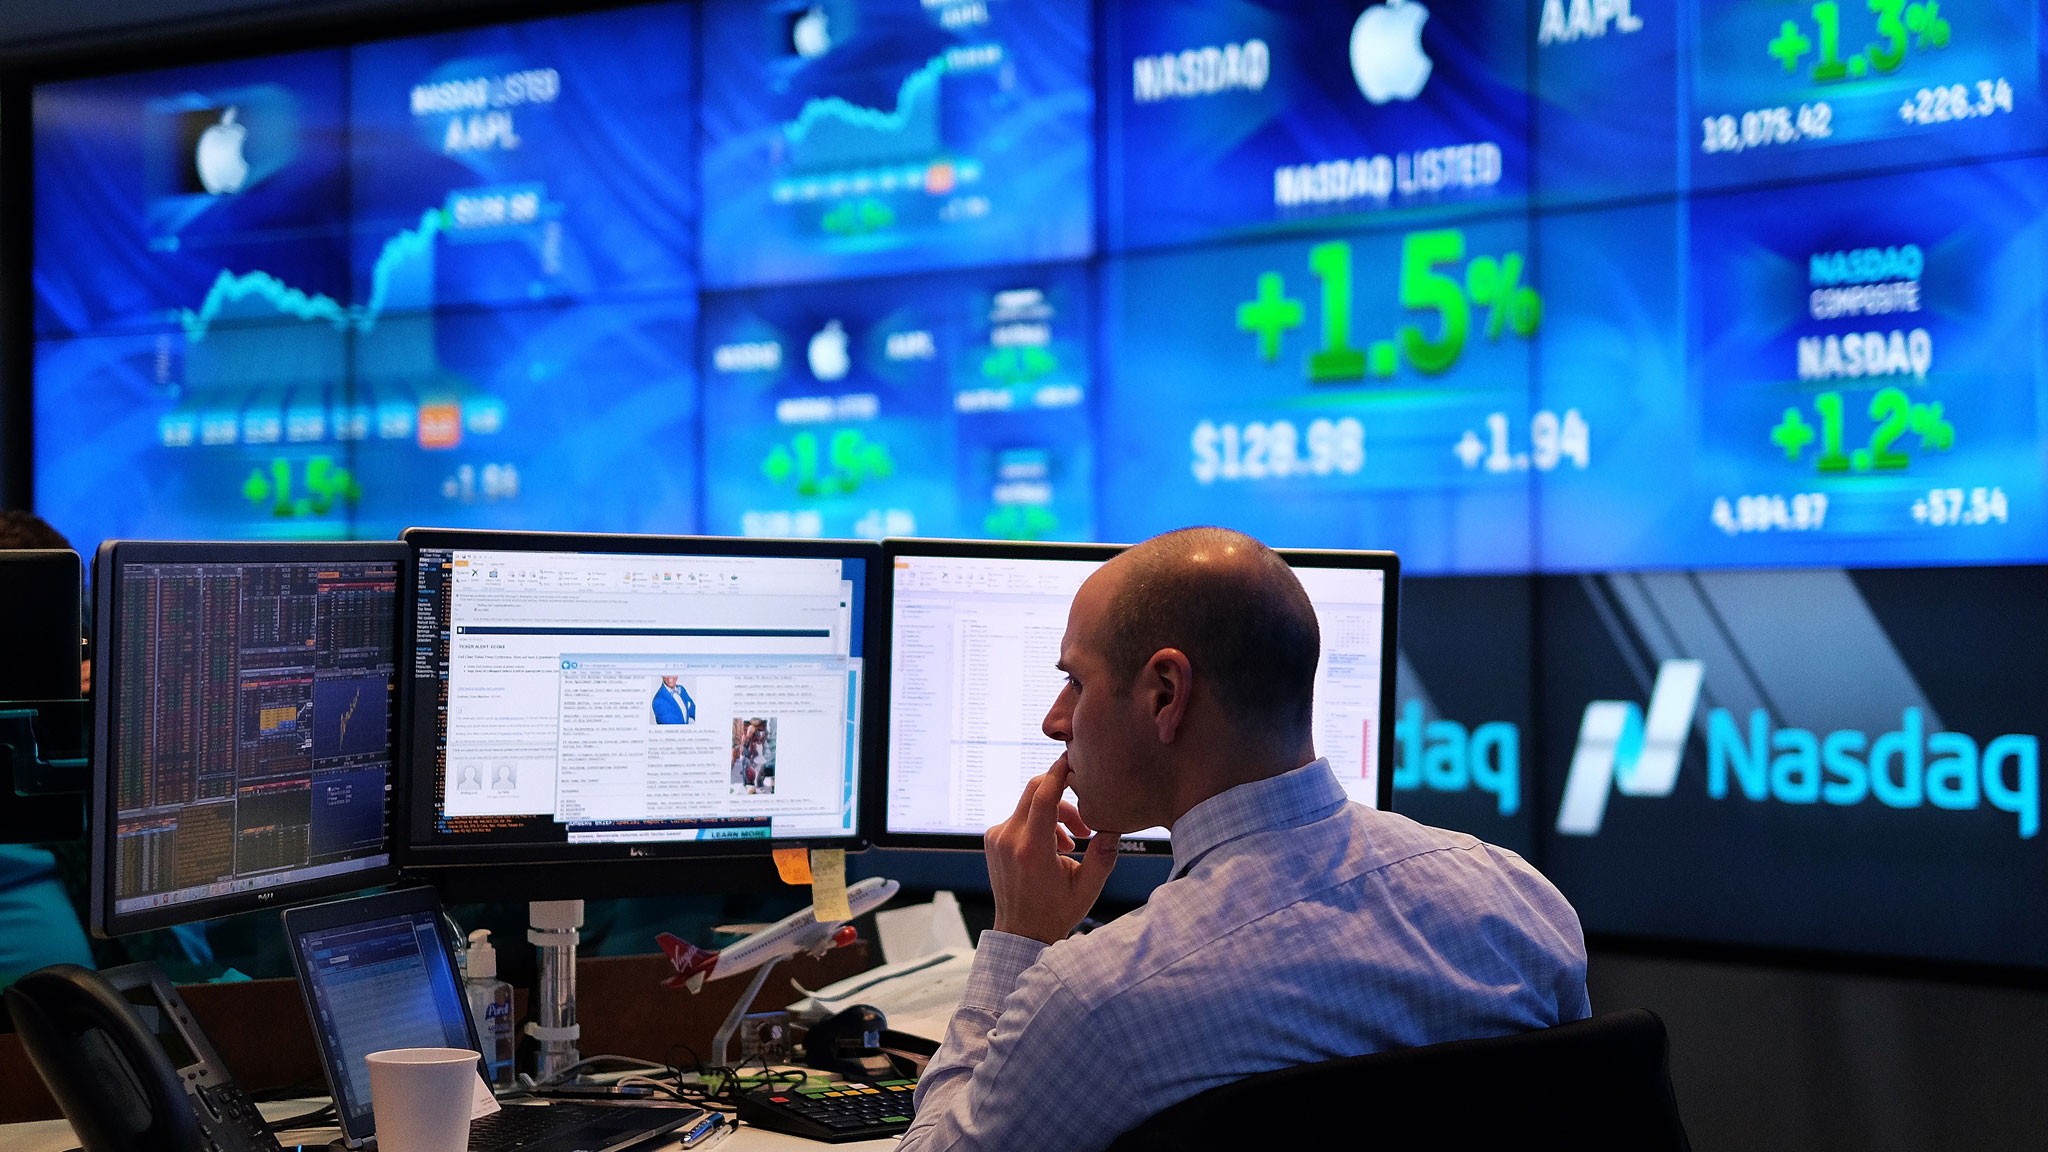 Nasdaq After Hours Quote Glitch Resets Multiple Nasdaq Tech Stocks To Same Price